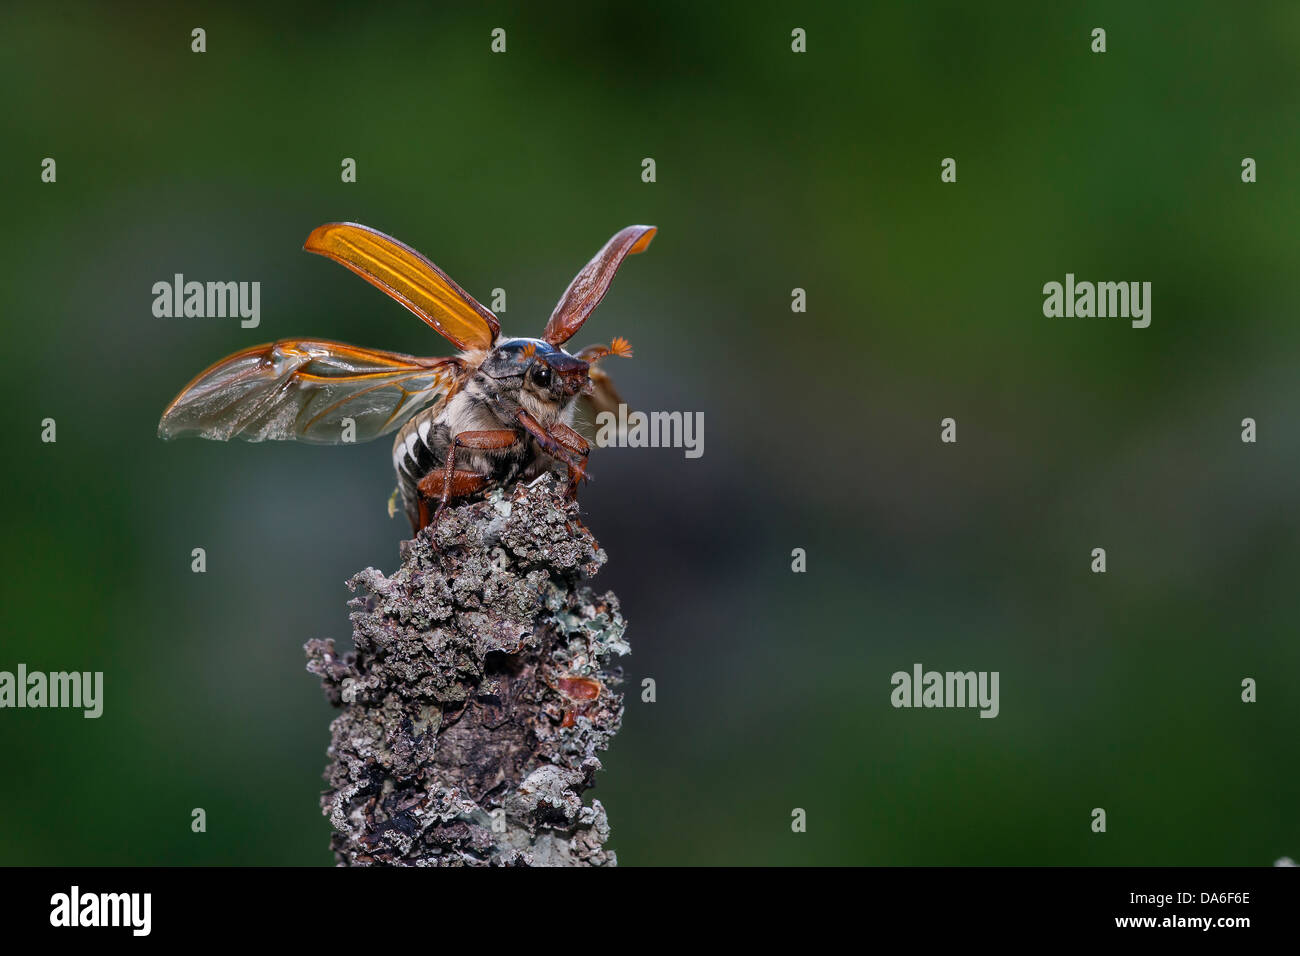 Cockchafer (Melolontha melolontha) taking off Stock Photo